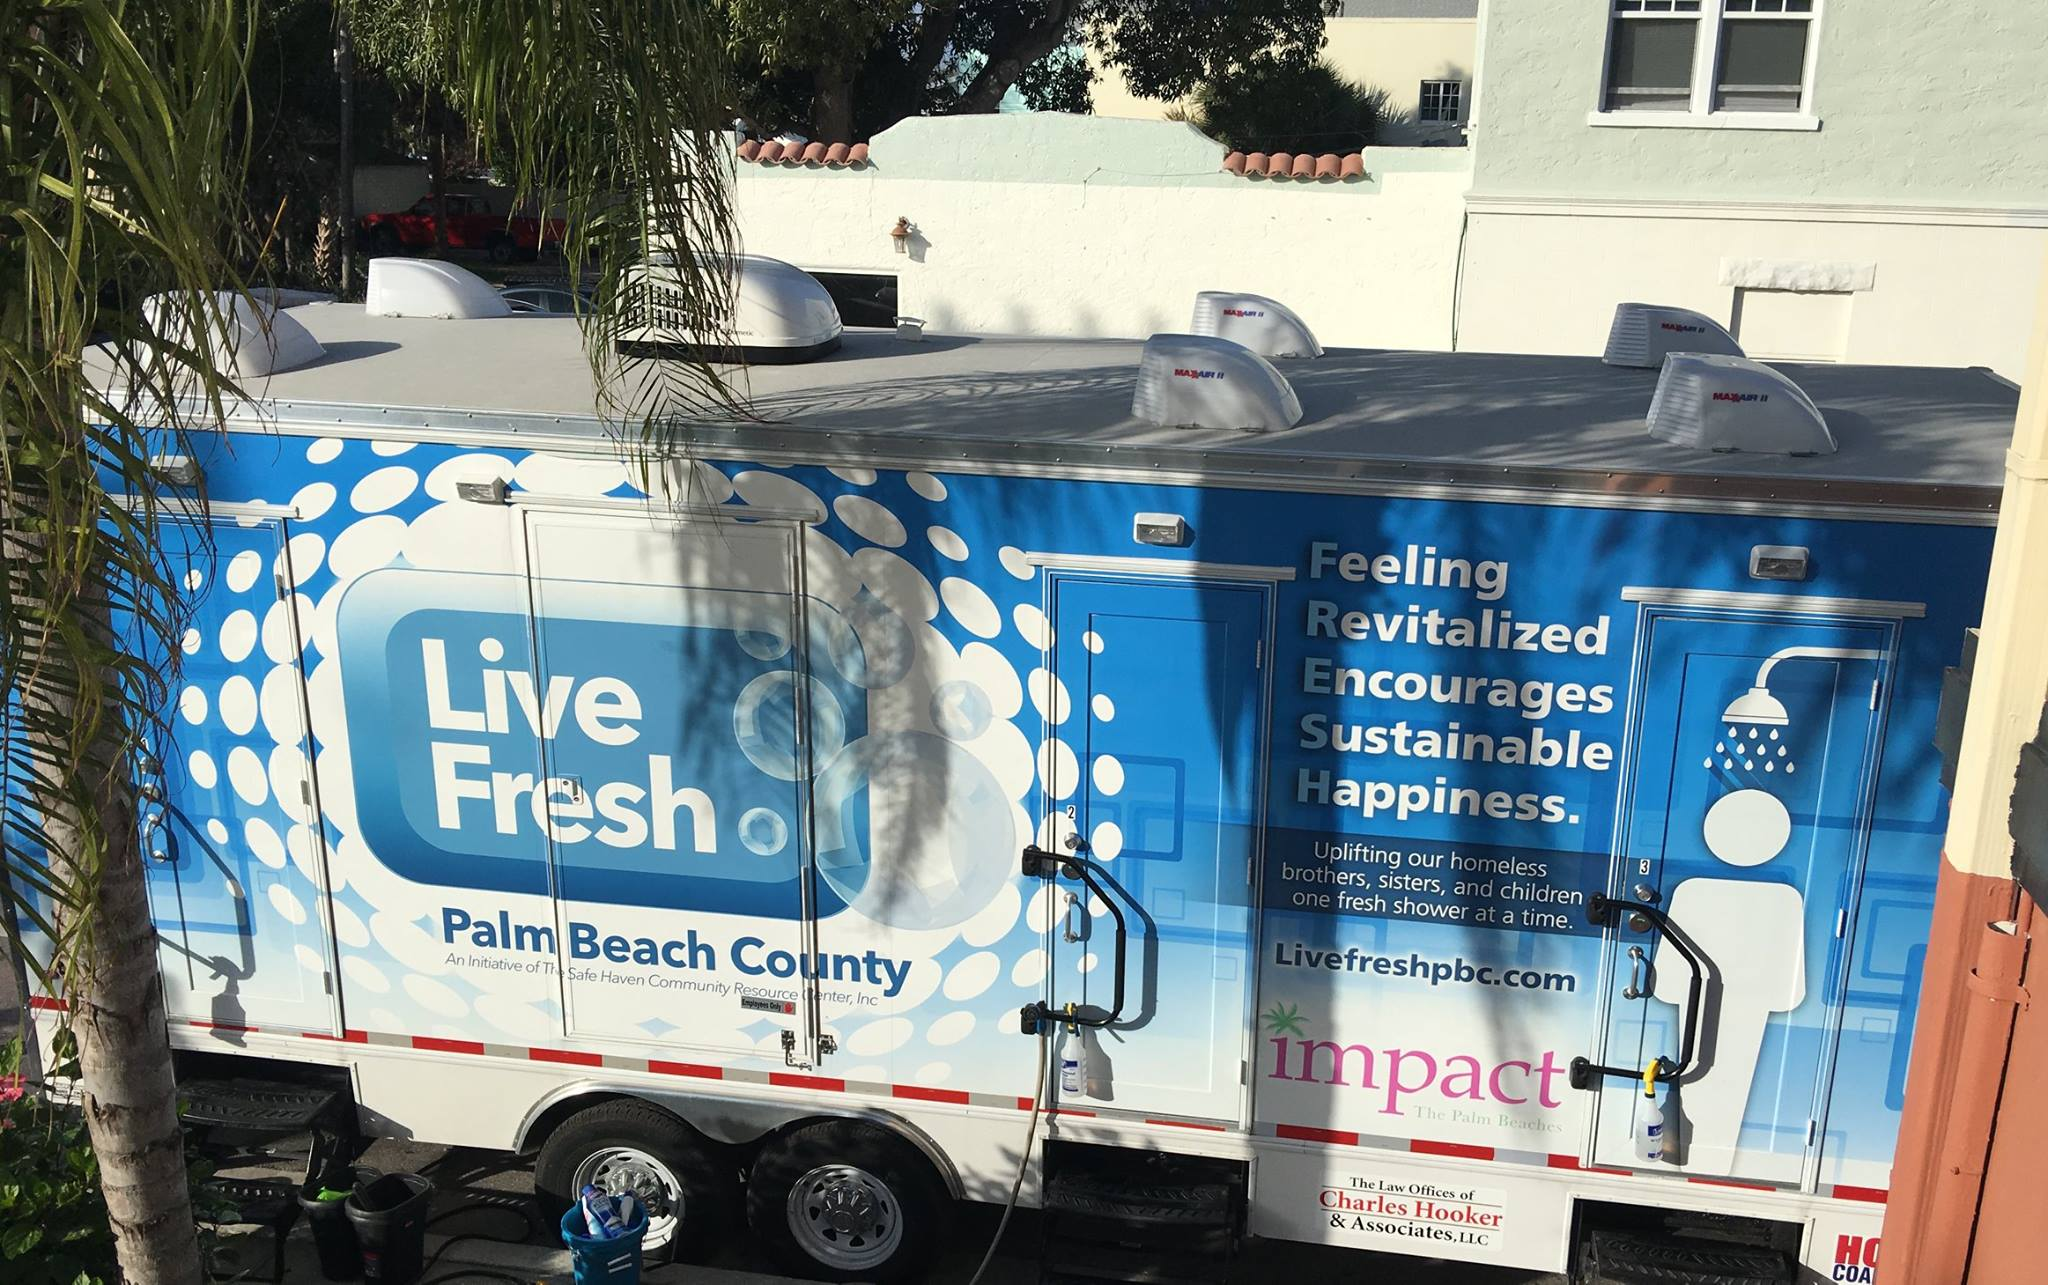 Live Fresh Palm Beach